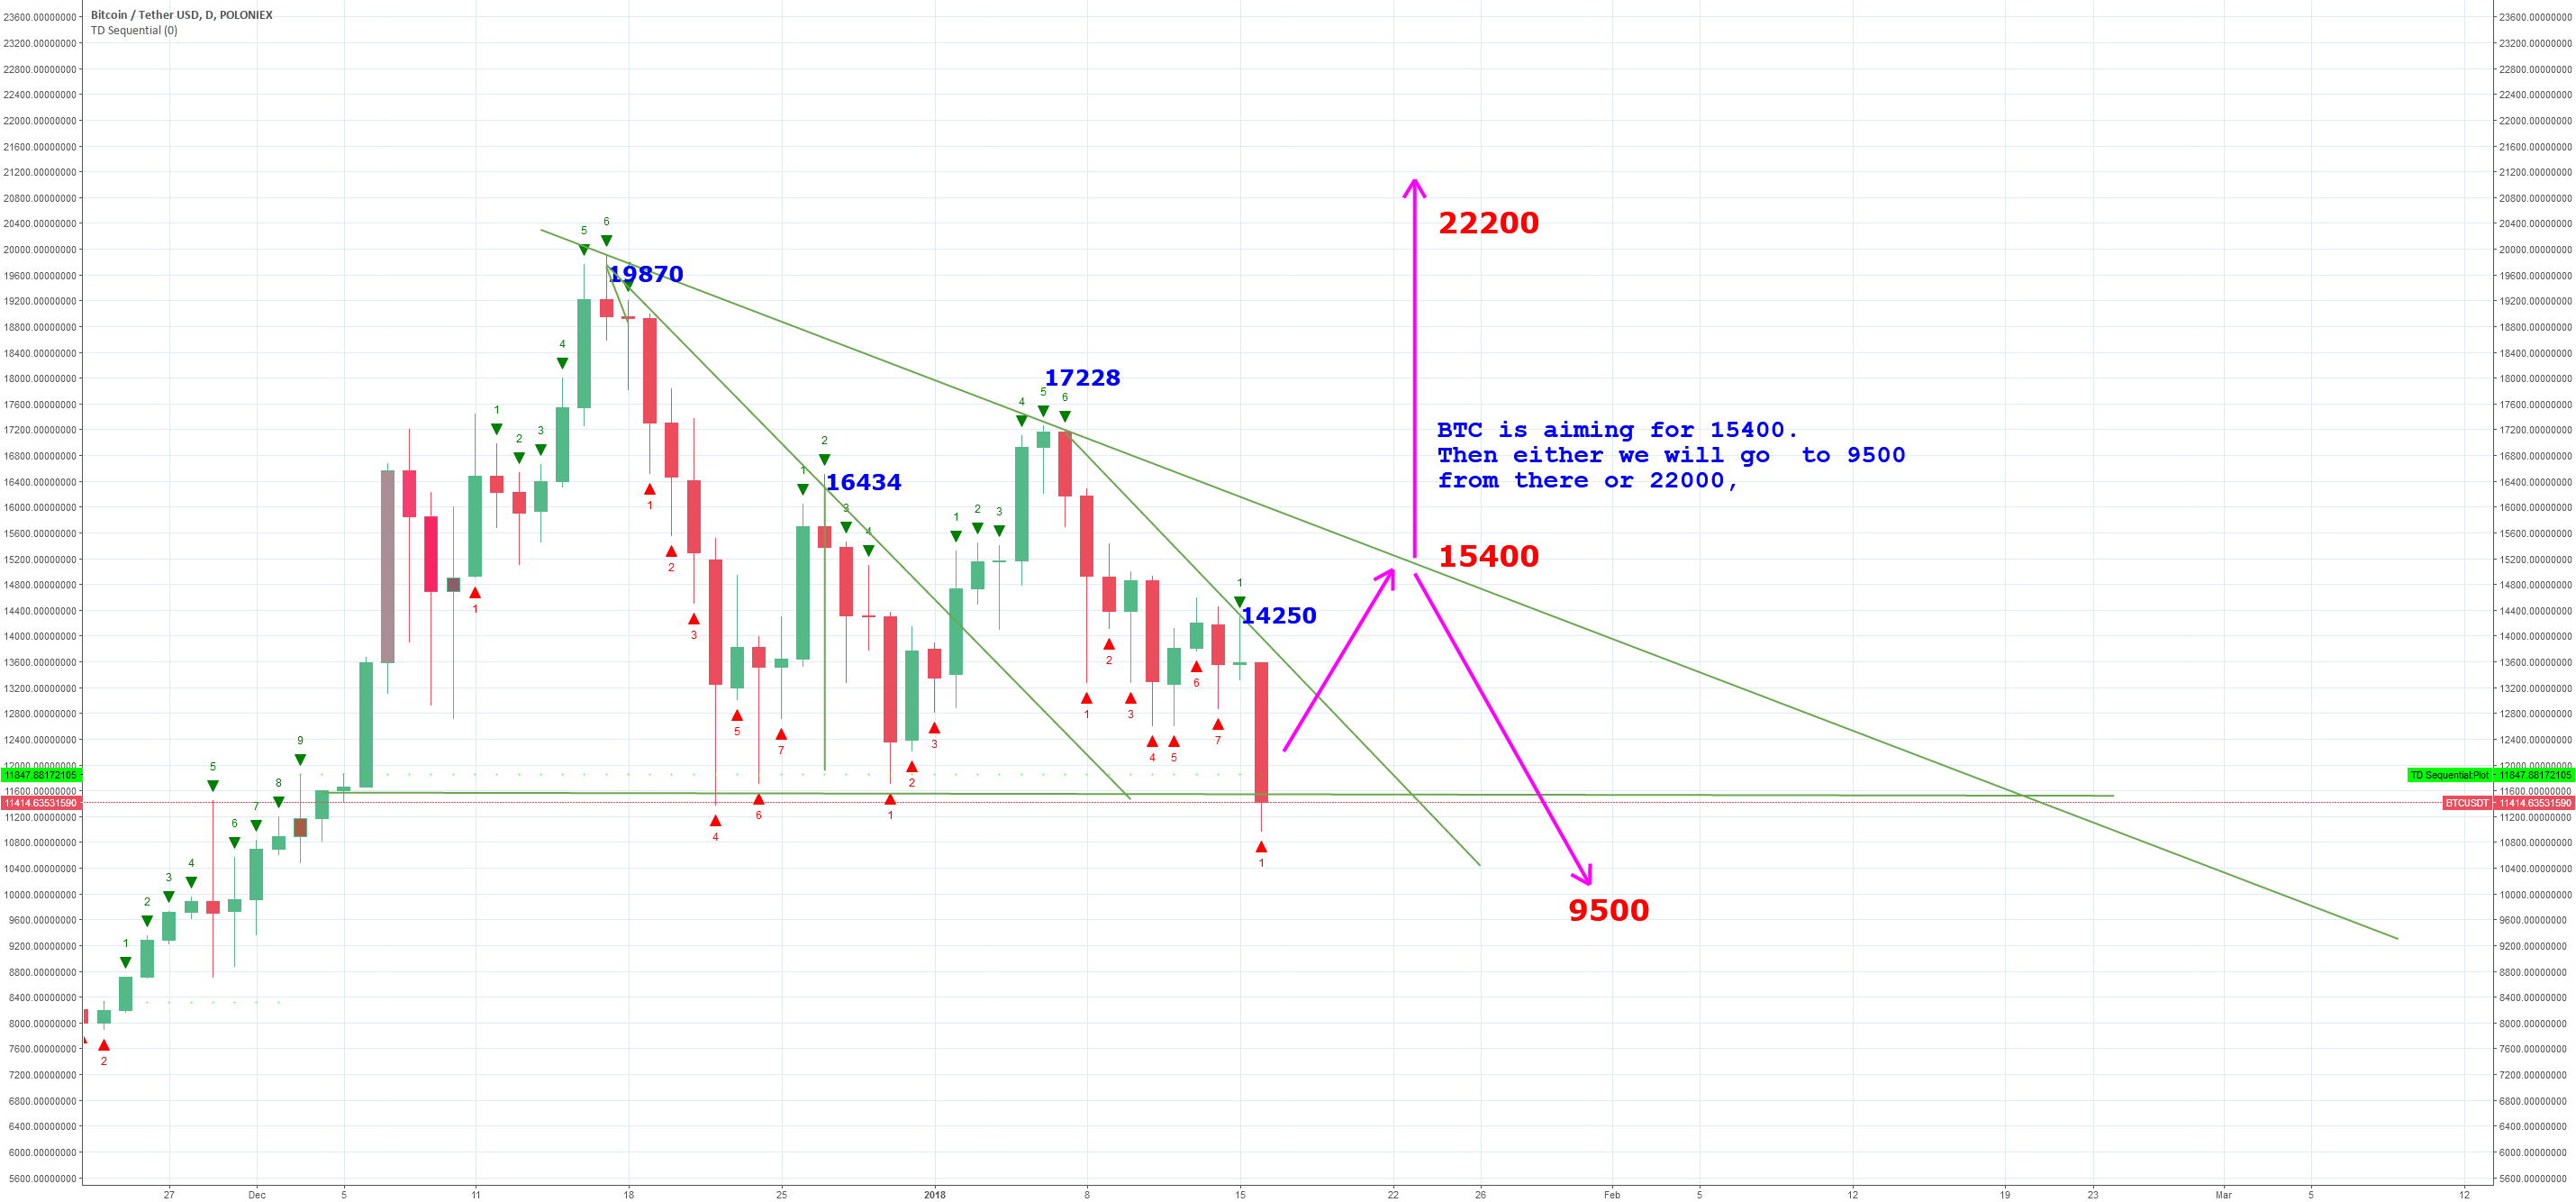 BTC target  15400  - then either  back to 9k or up to  22000